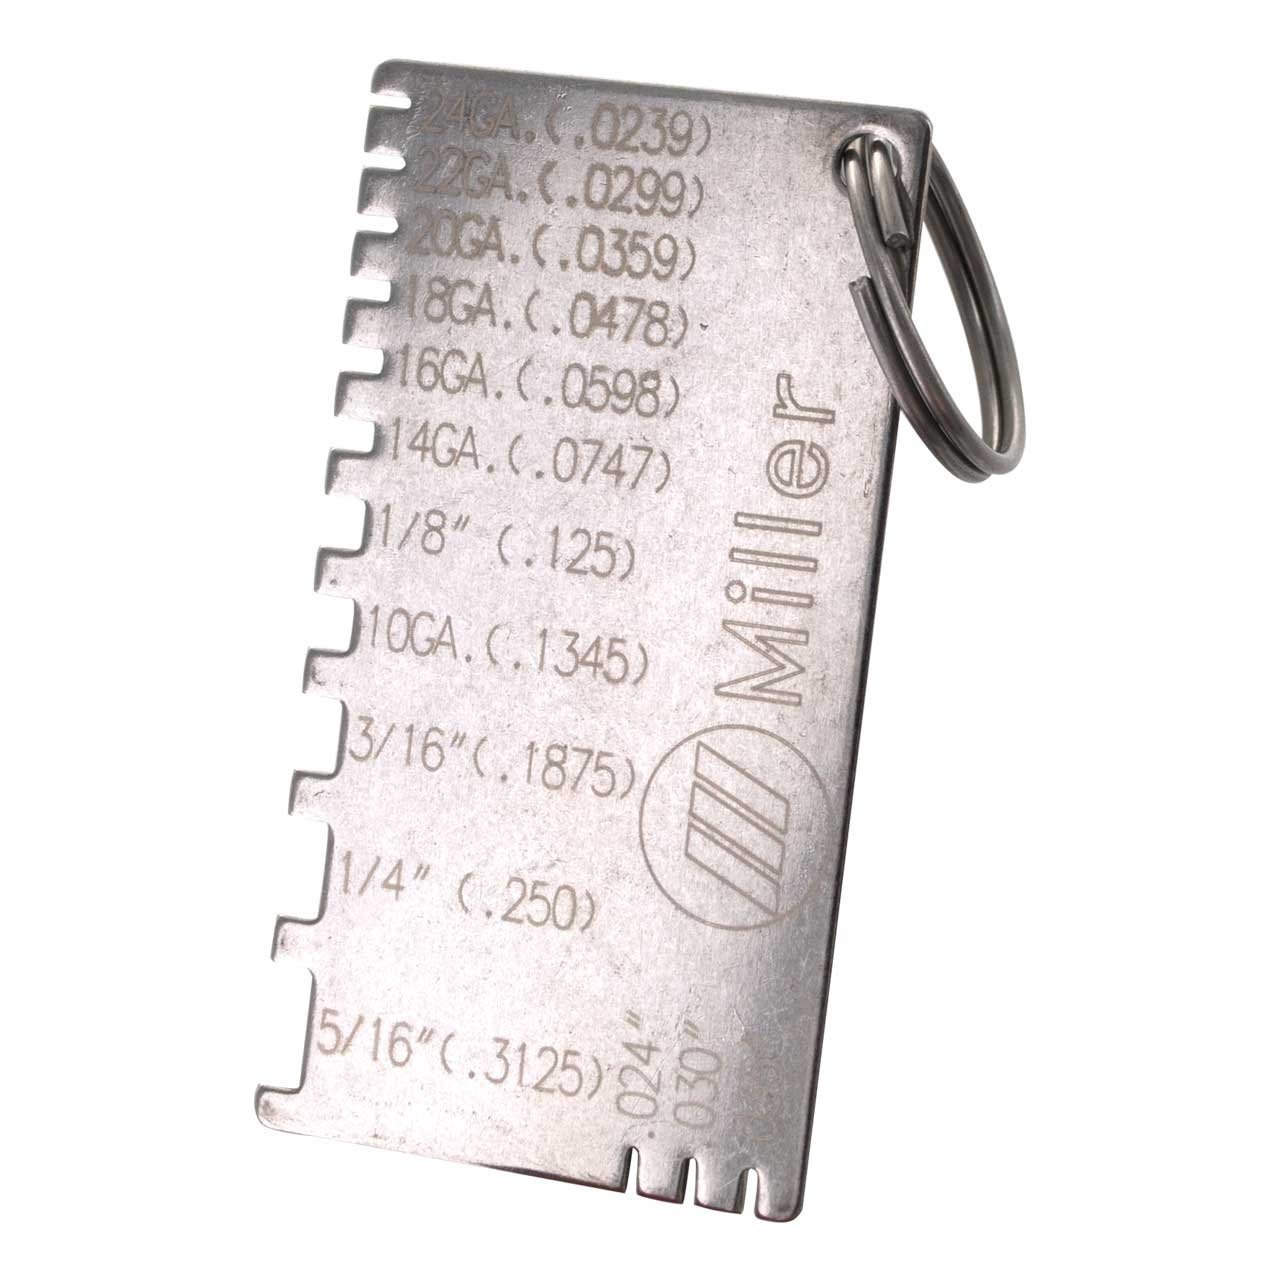 Amazon.com: 229895 Gage, Wire Metal Sizes: Health & Personal Care